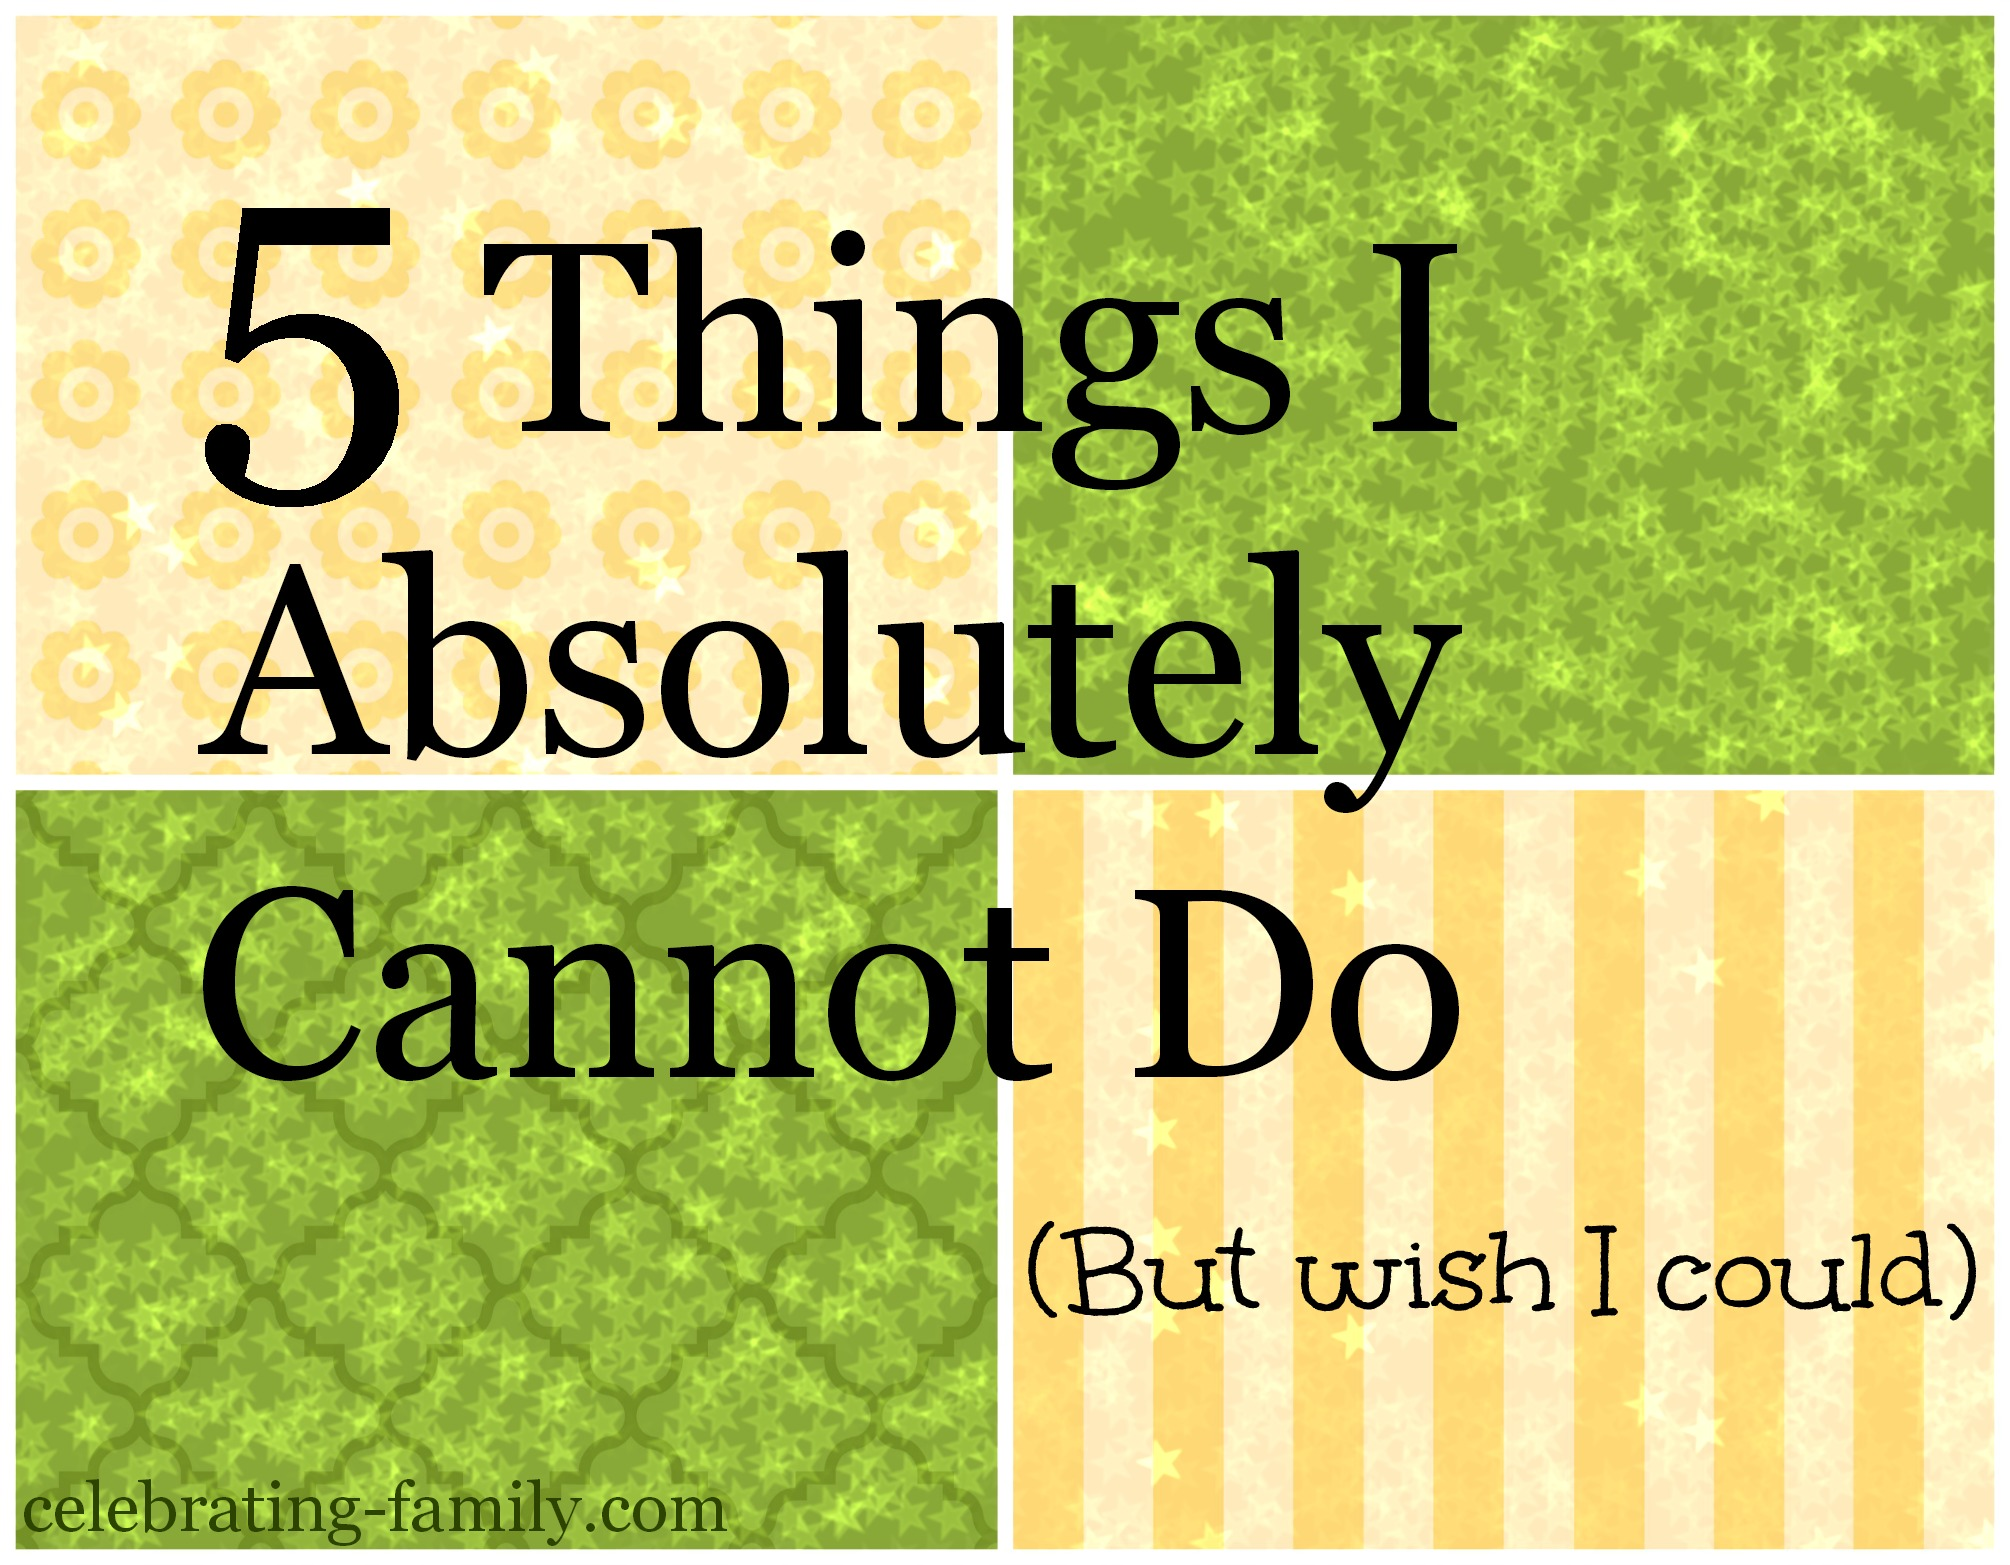 5 Things I Cannot Do